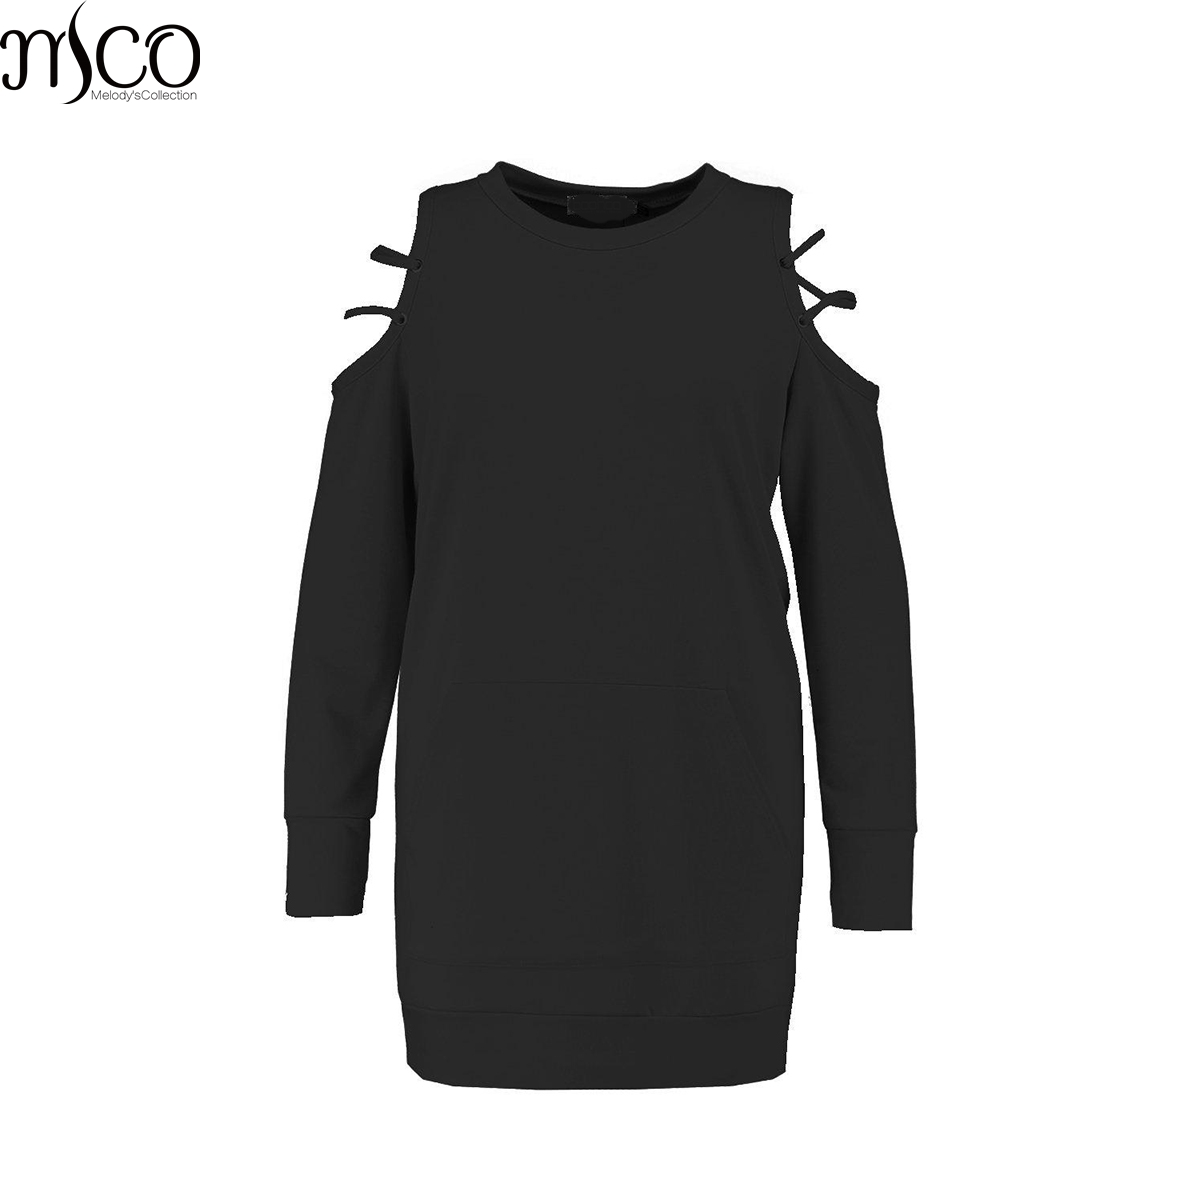 MCO Autumn <font><b>Sexy</b></font> Cold Caged Off Shoulder <font><b>Plus</b></font> <font><b>Size</b></font> Jumper <font><b>Dress</b></font> Oversized Black Tunic <font><b>Dress</b></font> Basic Big <font><b>Size</b></font> Women Clothing <font><b>6xl</b></font> 7xl image